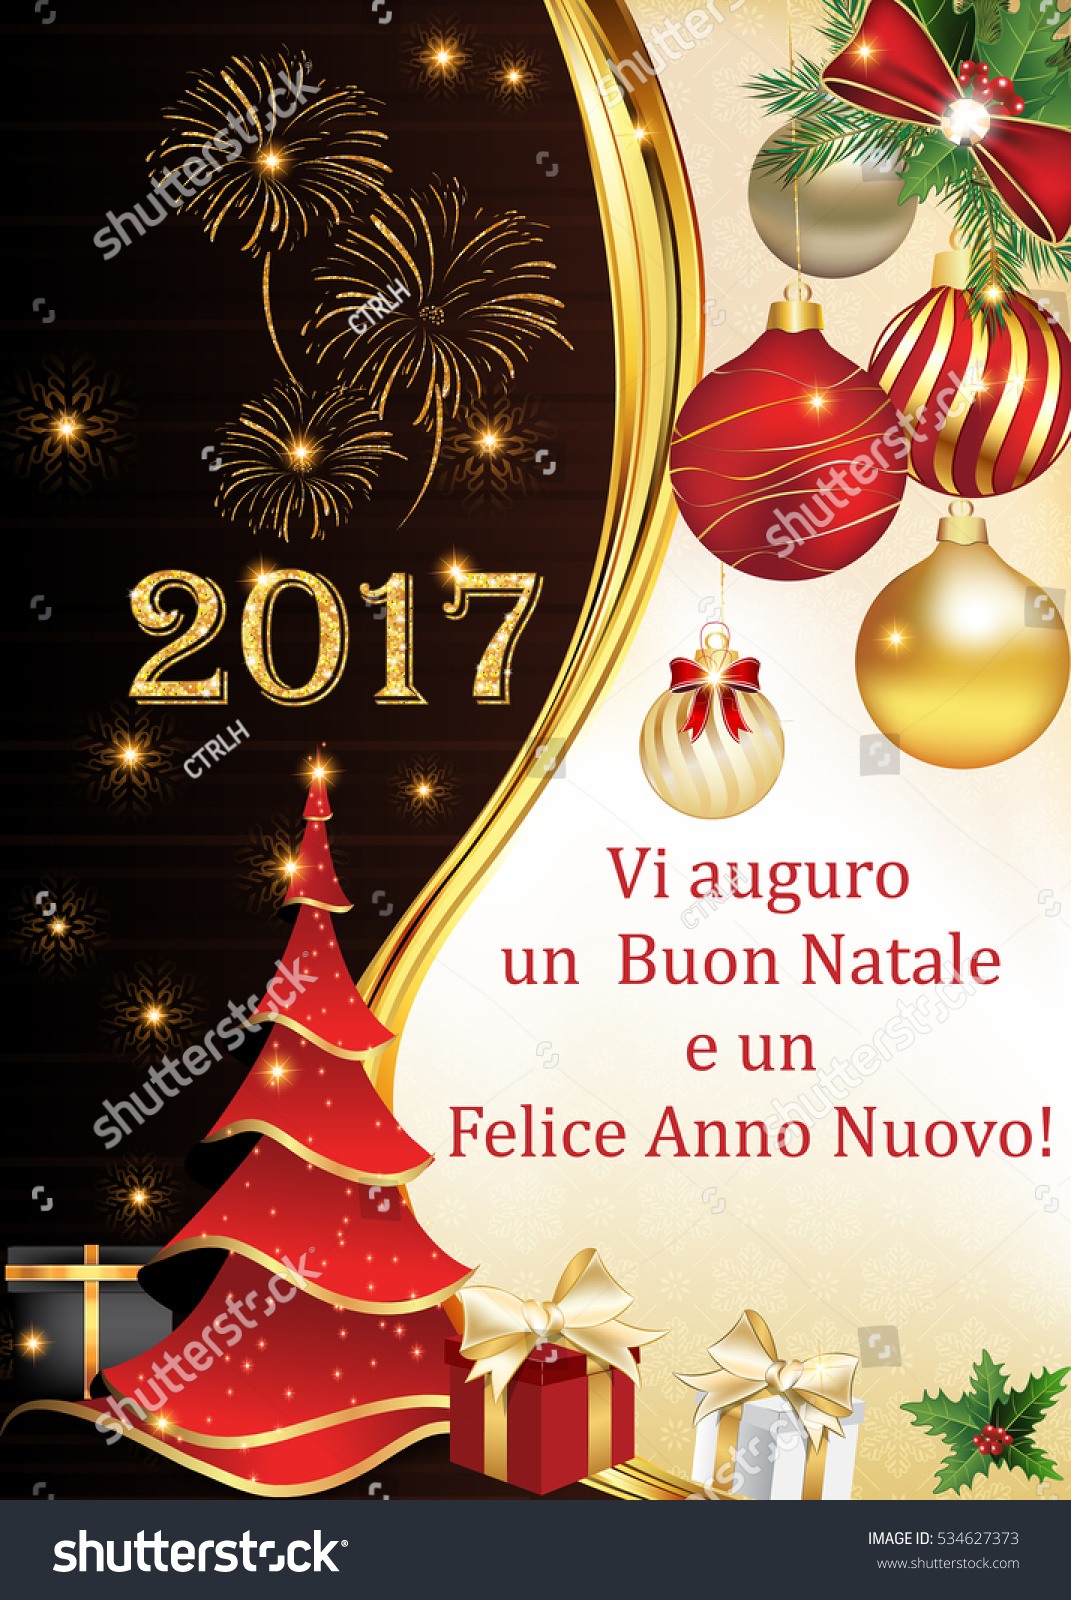 2018 merry christmas and happy new year greeting card with german 2018 merry christmas and happy new year greeting card with german message text translation we wish you a merry christmas and a happy new year ez canvas m4hsunfo